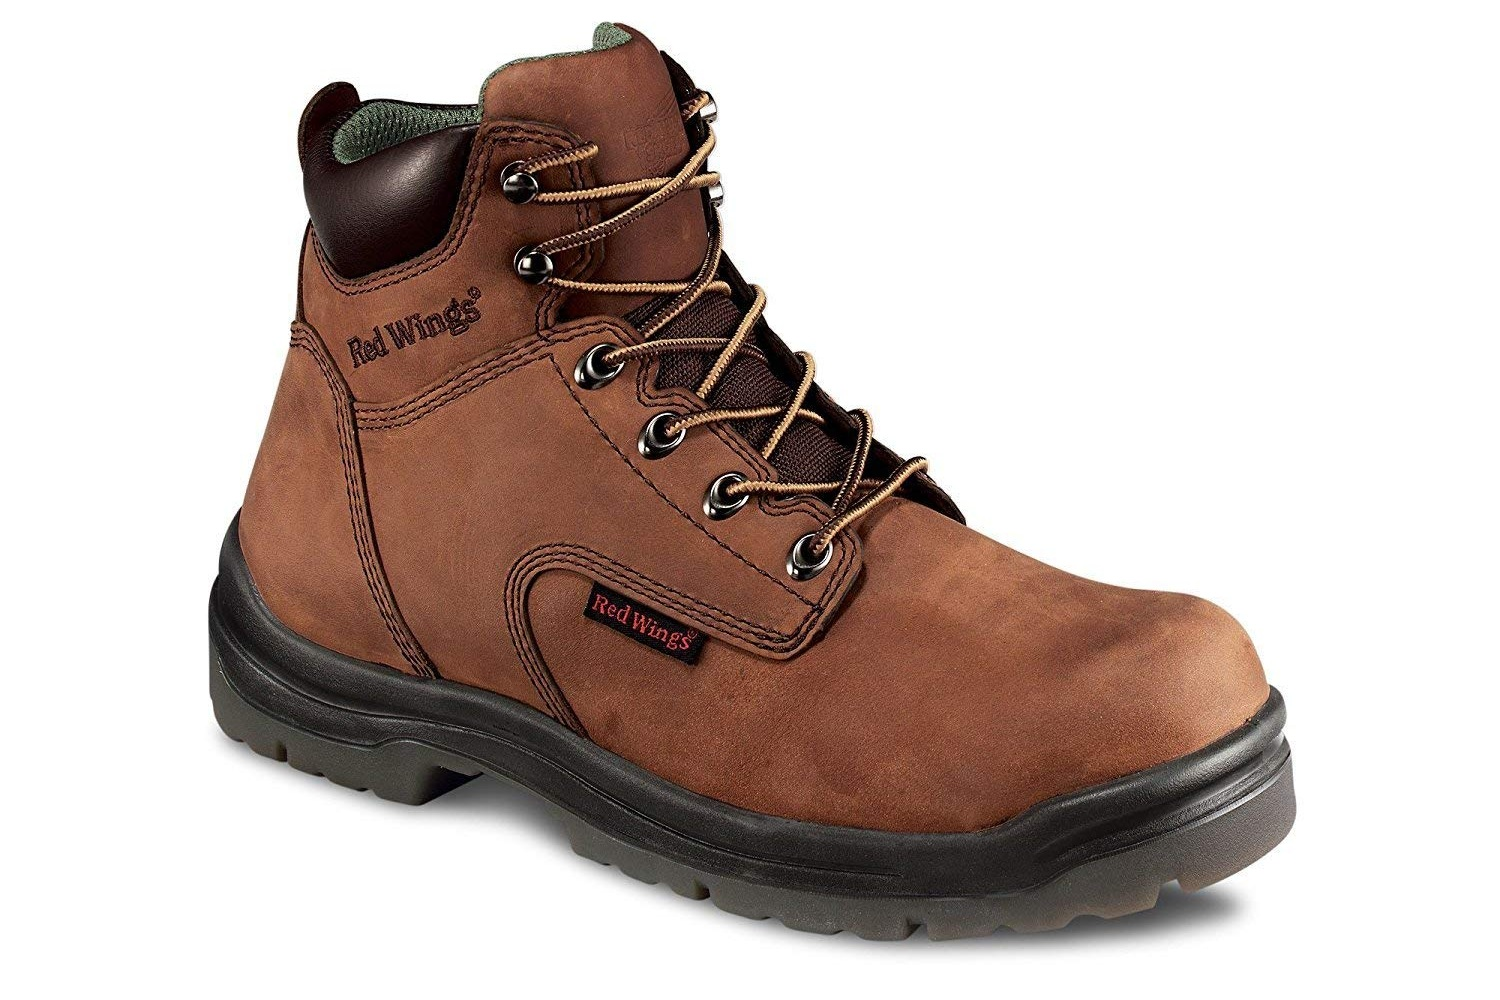 Red Wing - Red Wing work boots are perfect for every job. Several options are available. Boots can be ordered with/without the following: steel/composite toe, waterproof, insulated, electrical hazard, and puncture resistant. They are also available in different heights. These boots are comfortable and can be worn in the fields, the shop, or to walk around town.